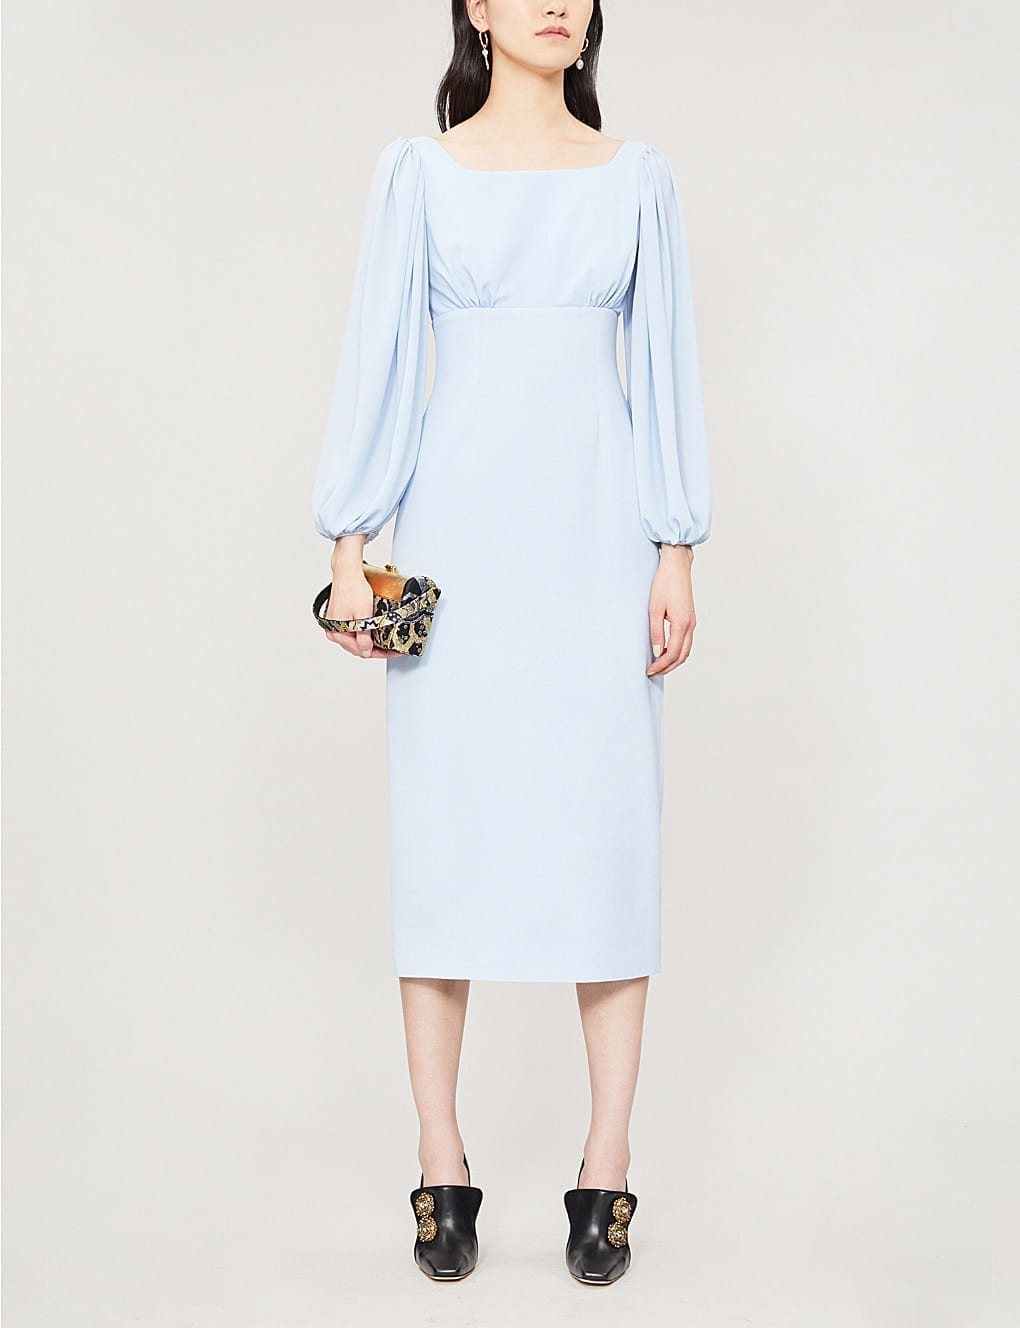 EMILIA WICKSTEAD Magita Balloon-Sleeve Crepe Midi Sky Blue Dress